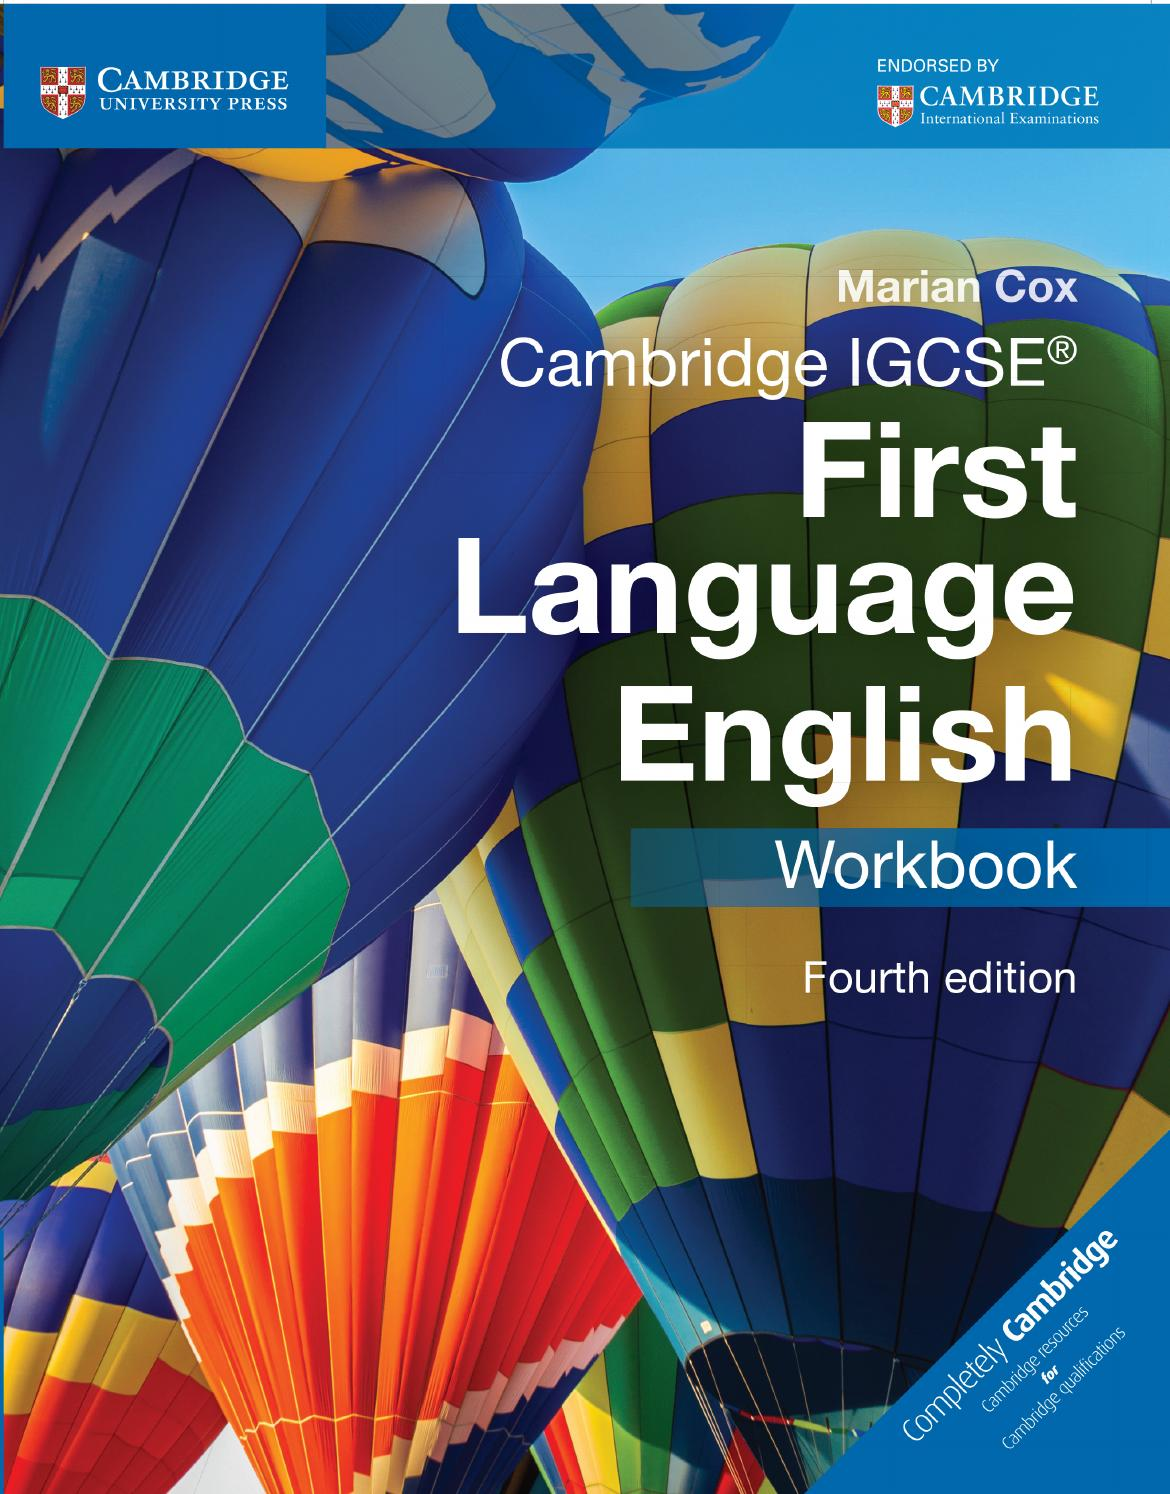 - Cambridge IGCSE First Language English Workbook (Fourth Edition